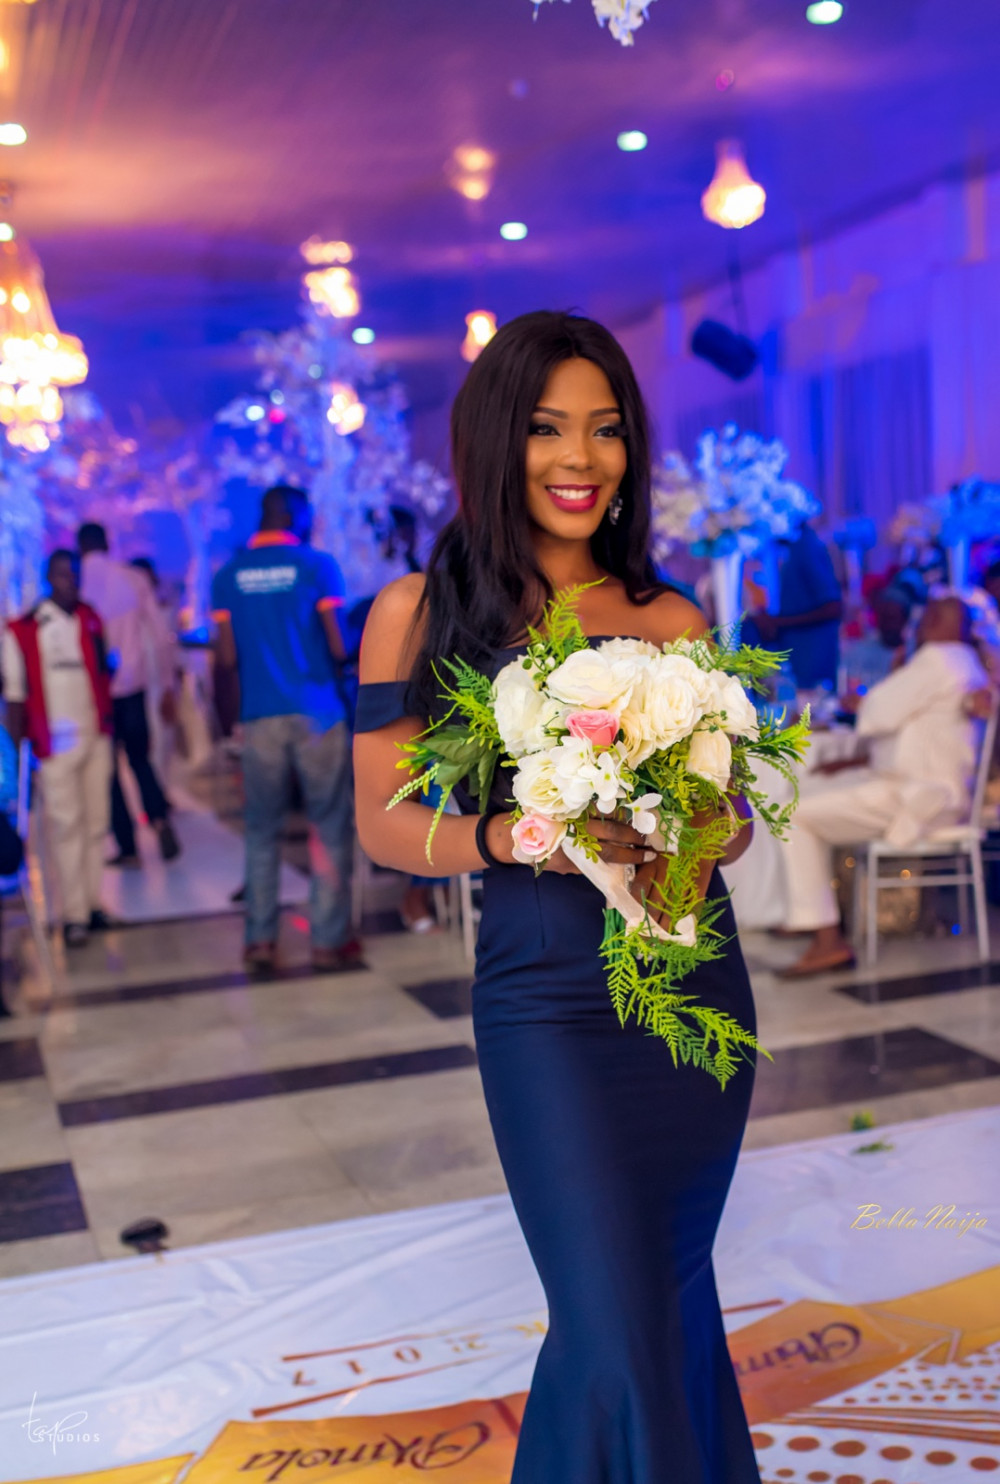 Bimbo and Akinolas Lovely Ask2017 Wedding TAP Studios